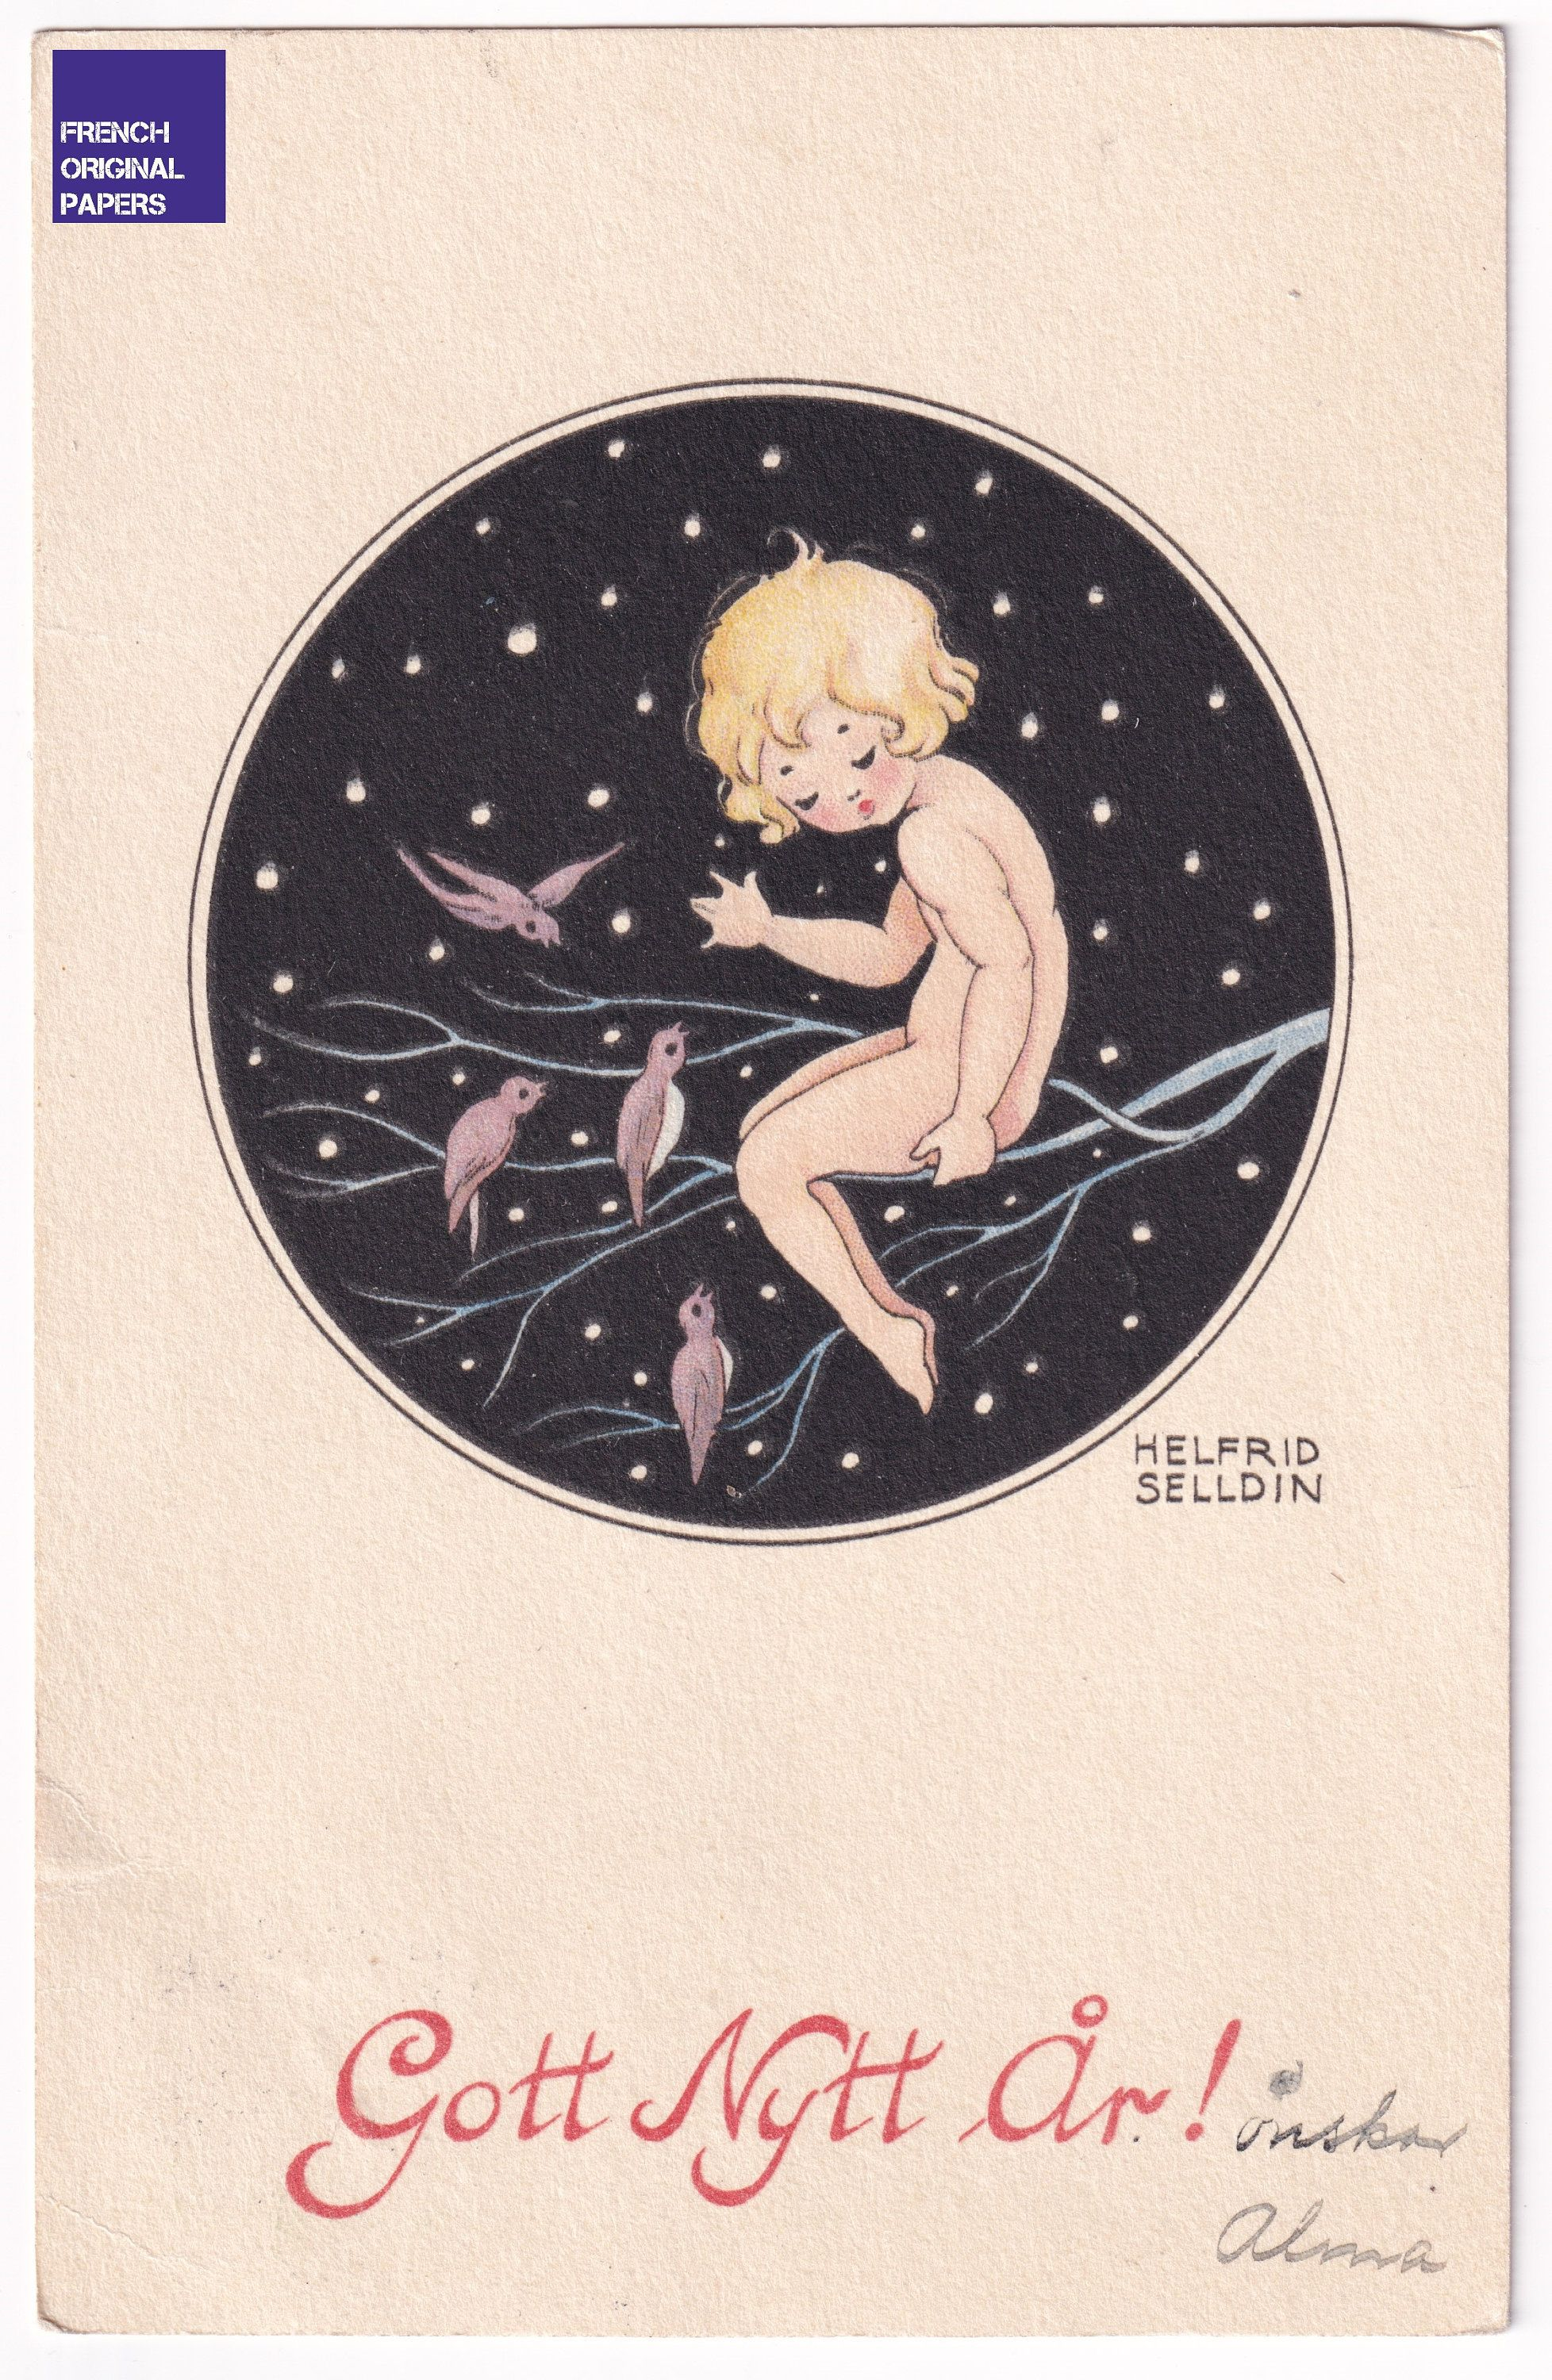 Gott Nytt År - Happy New Year 1930s Lovely illustrated antique swedish greeting postcard Helfrid Selldin nude baby tree vintage scandinavian